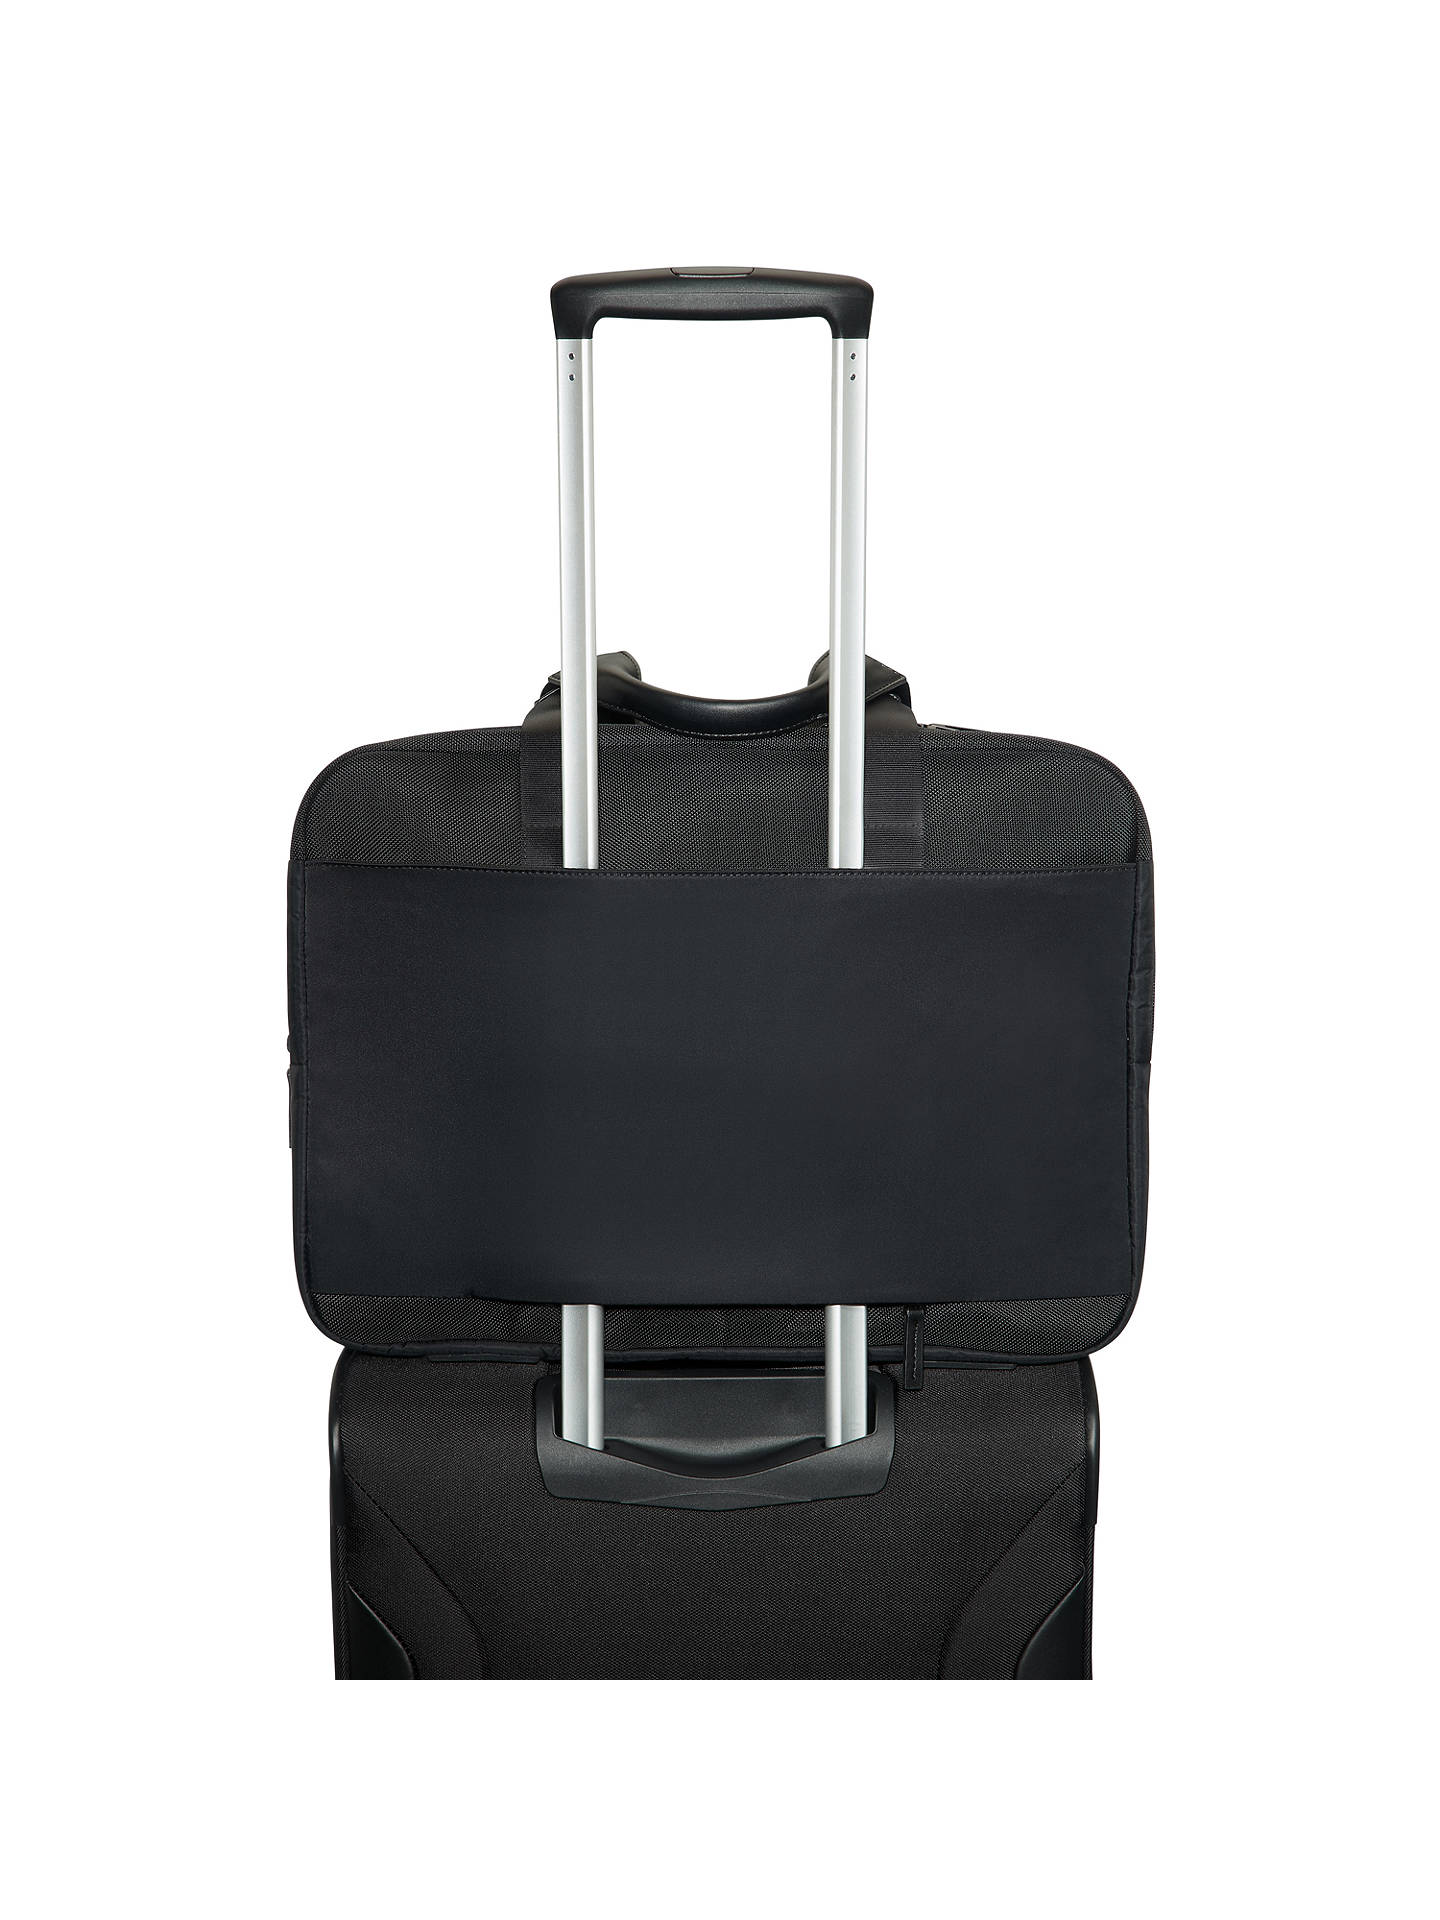 BuySamsonite Openroad Bailhandle Expandable 15.6inch Laptop Briefcase, Jet Black Online at johnlewis.com